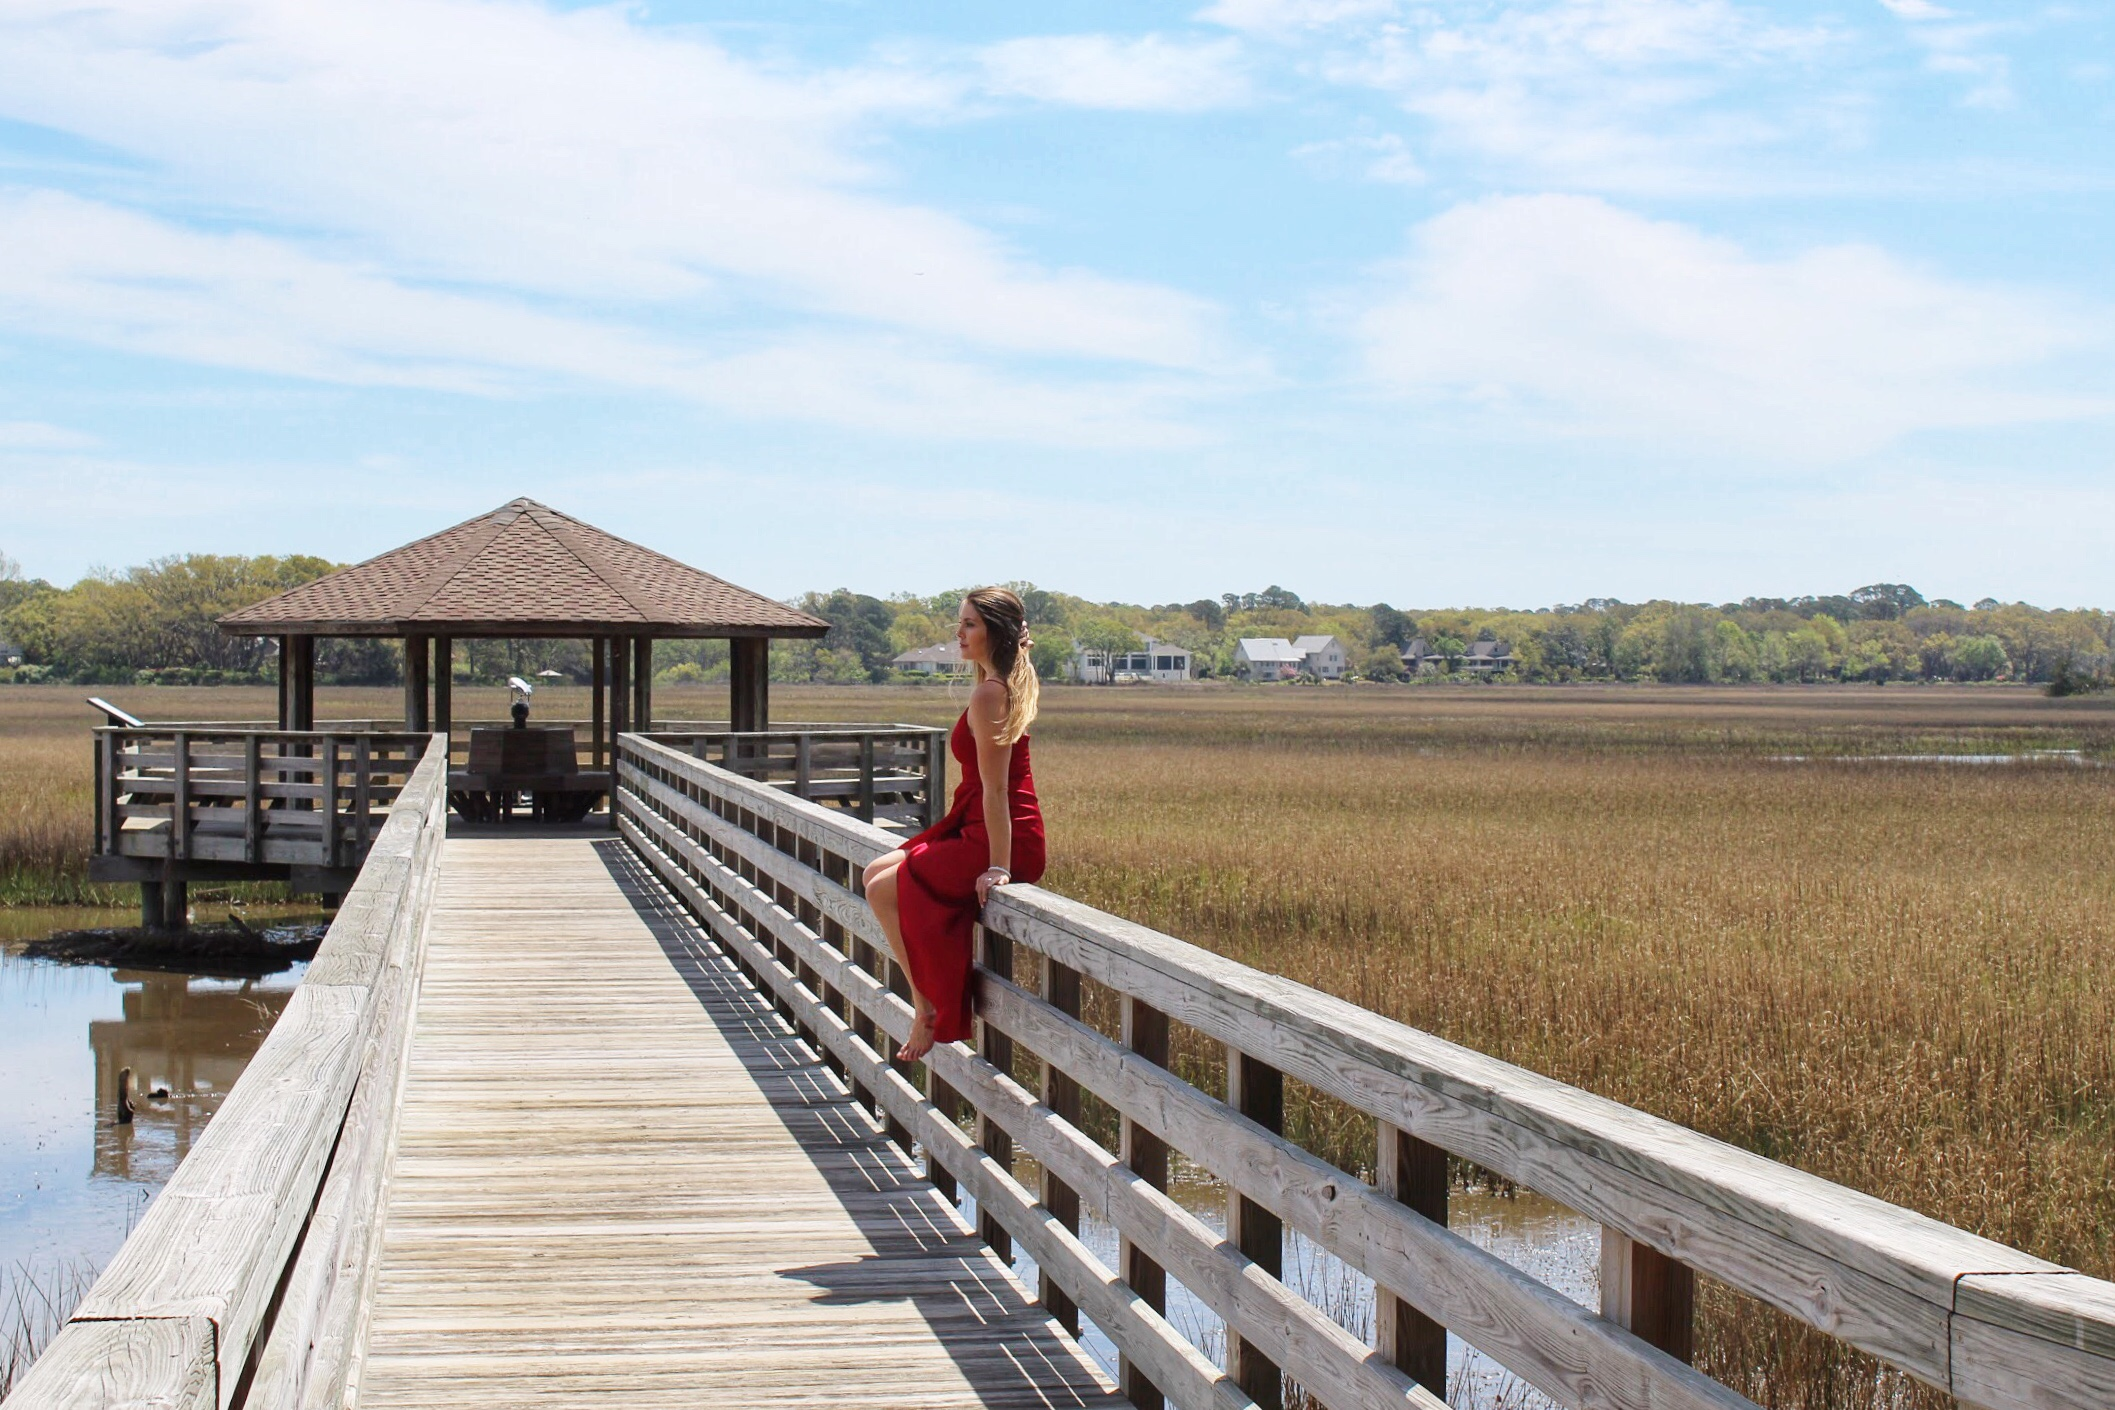 The fish Haul Creek marshes and pier.